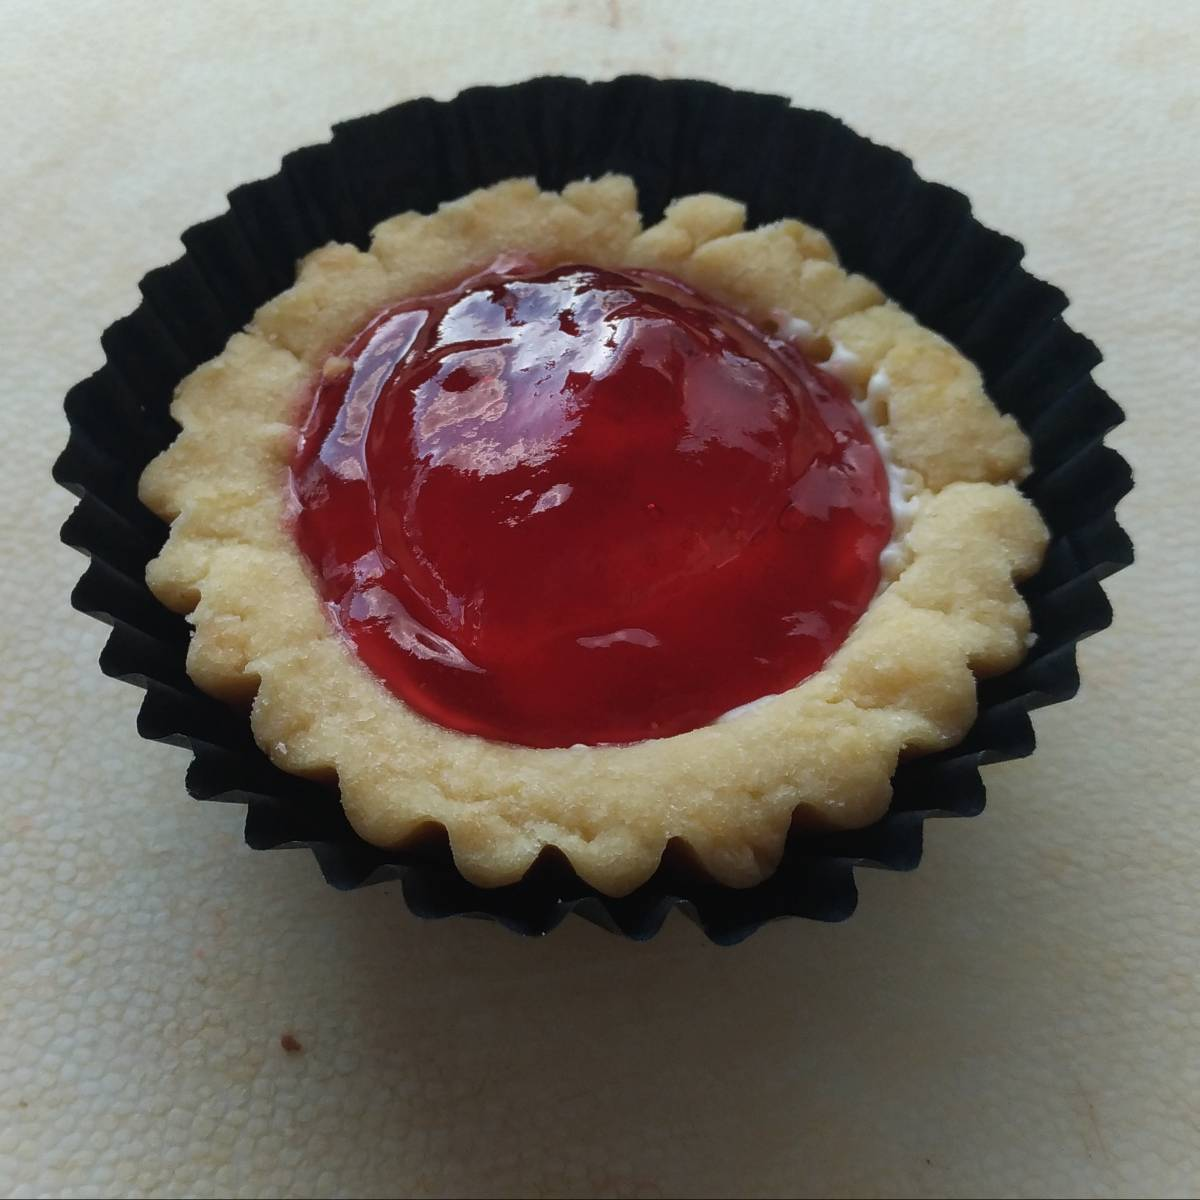 Mini Pie Strawberry Original Crust With Topping(4 Pieces)1